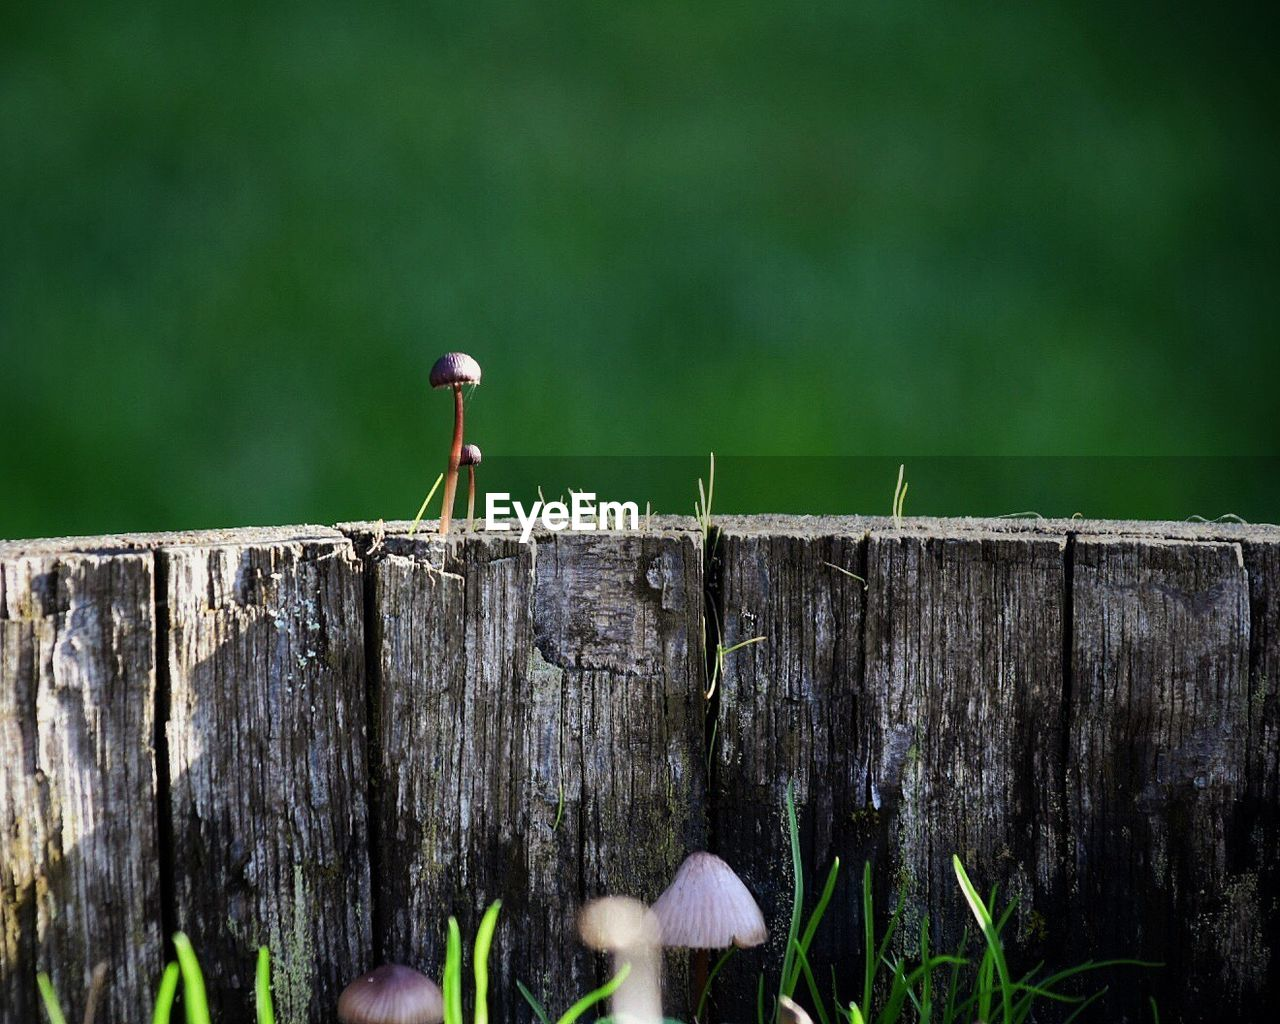 wood - material, day, nature, no people, outdoors, focus on foreground, tree stump, plant, fence, boundary, bark, barrier, post, one animal, tree, perching, wooden post, close-up, animal wildlife, selective focus, small